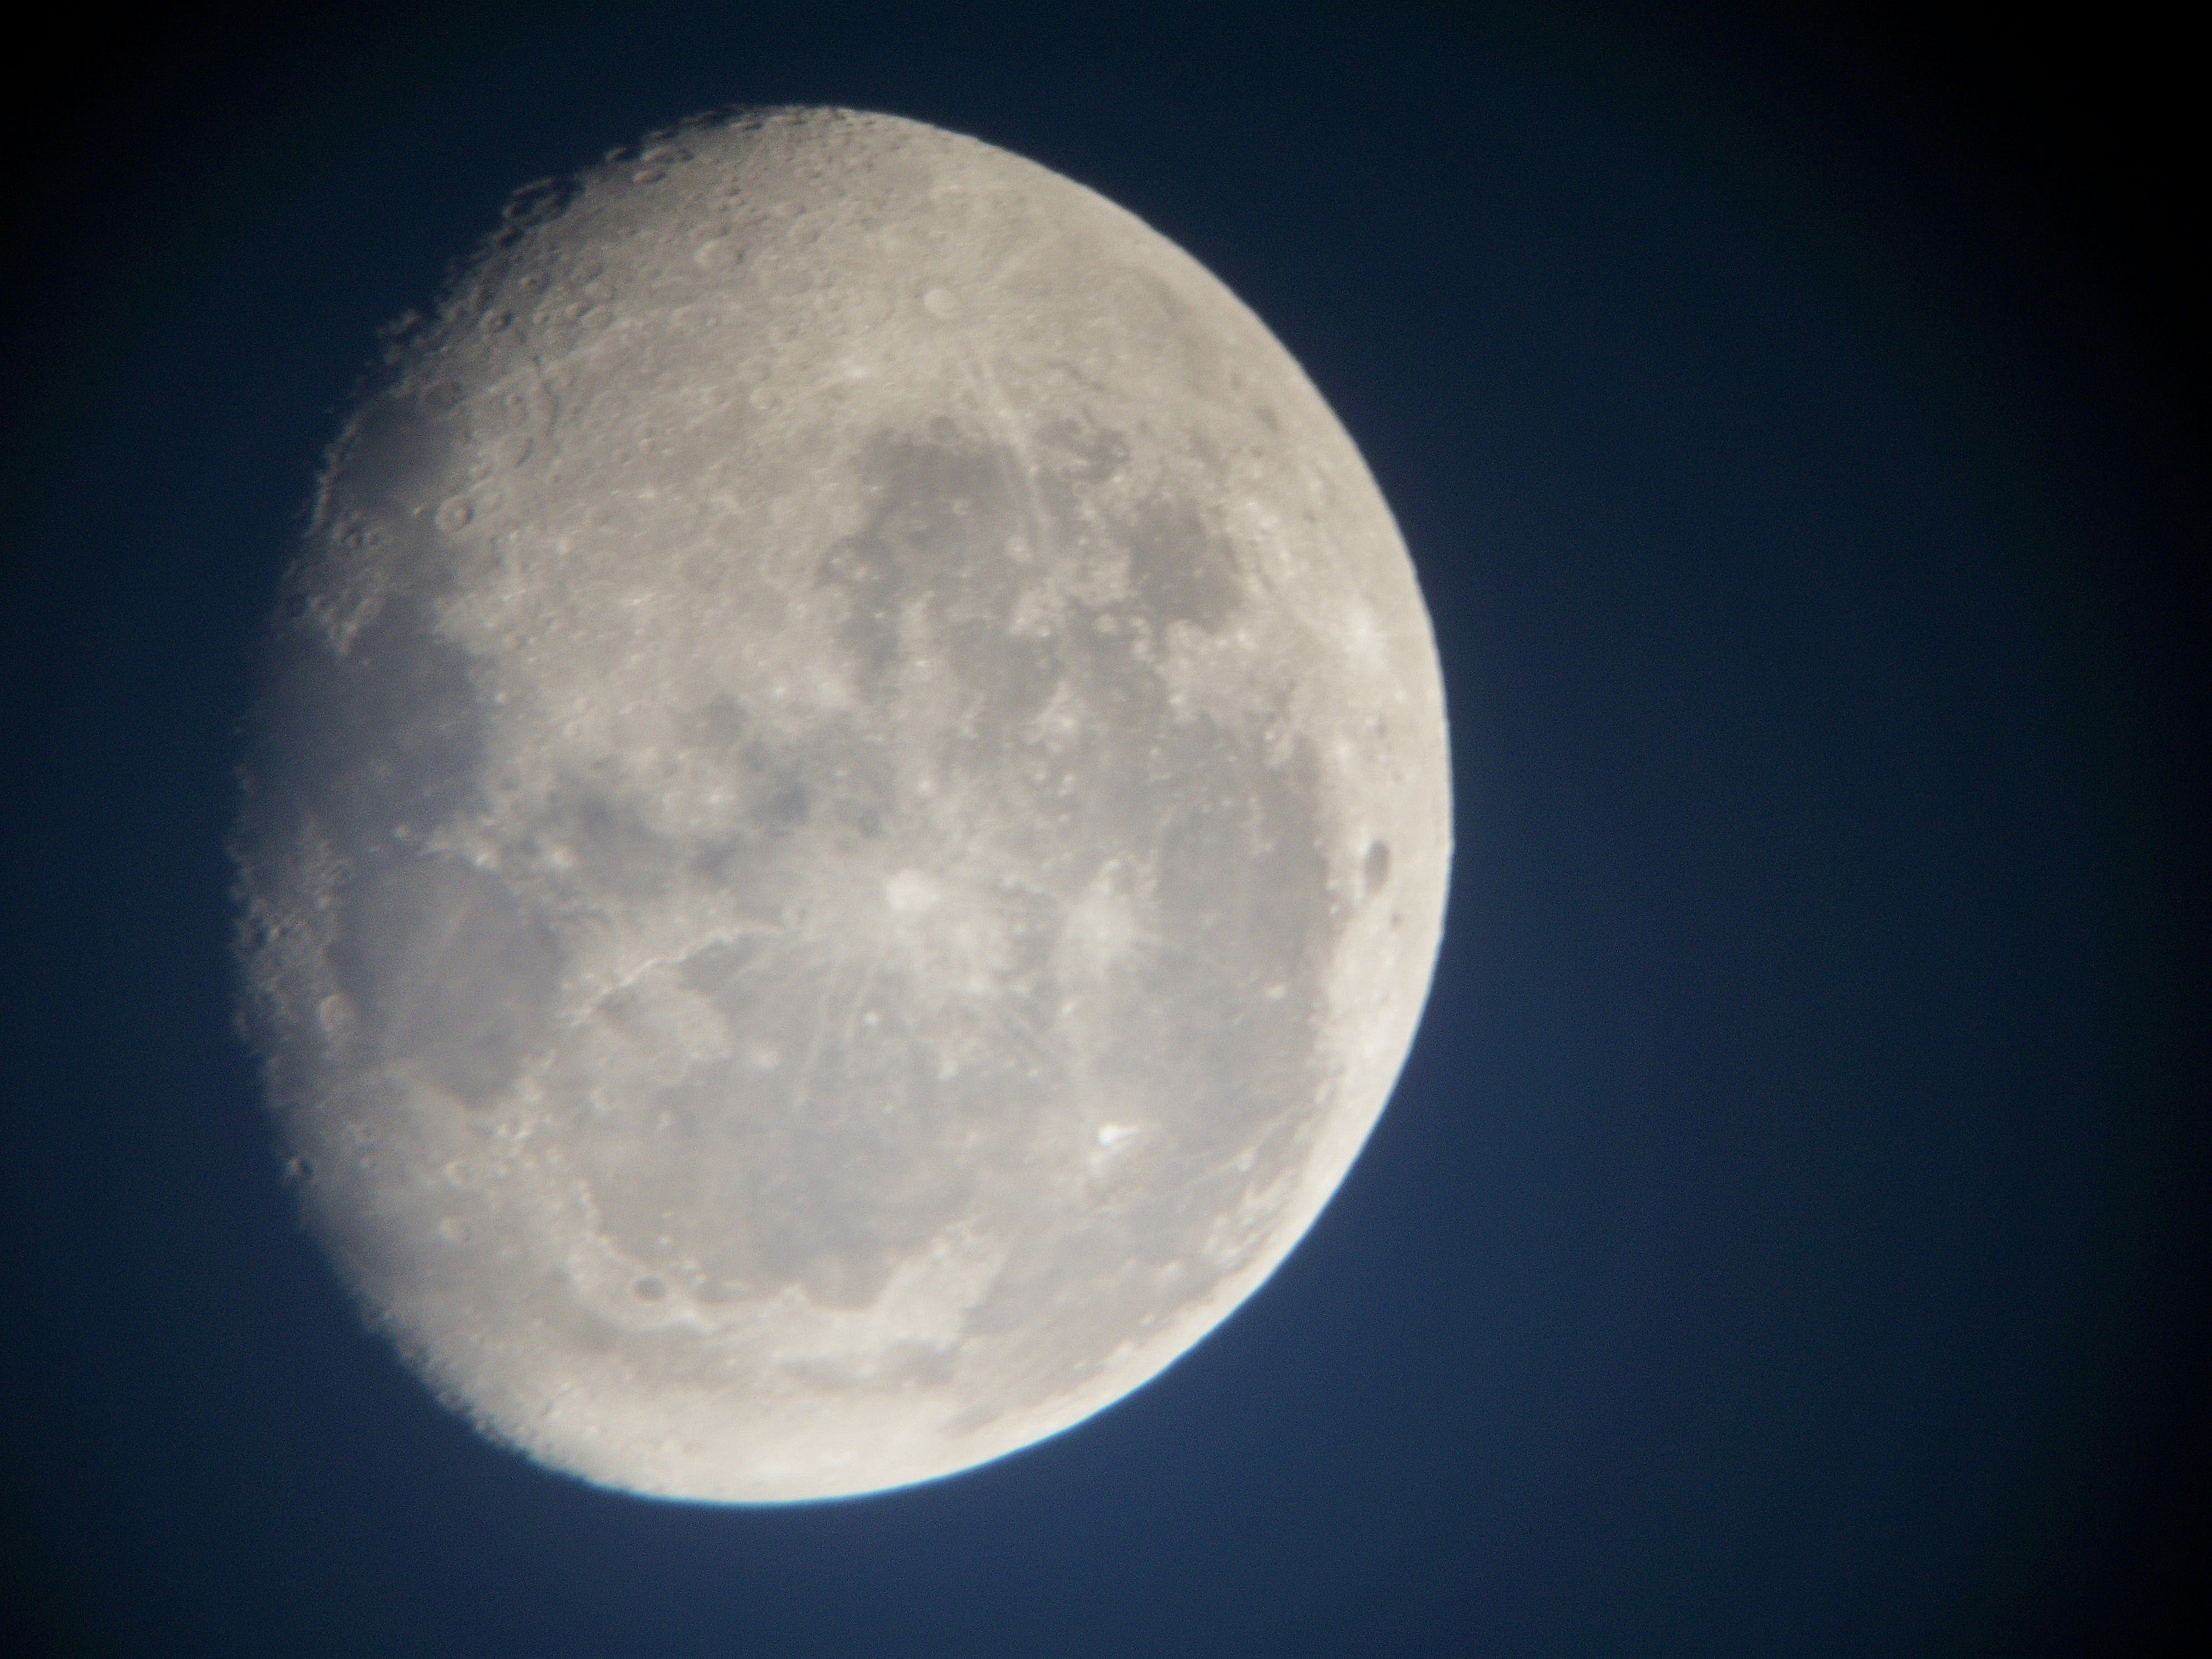 Moon 01-01-2013 at Orion Store